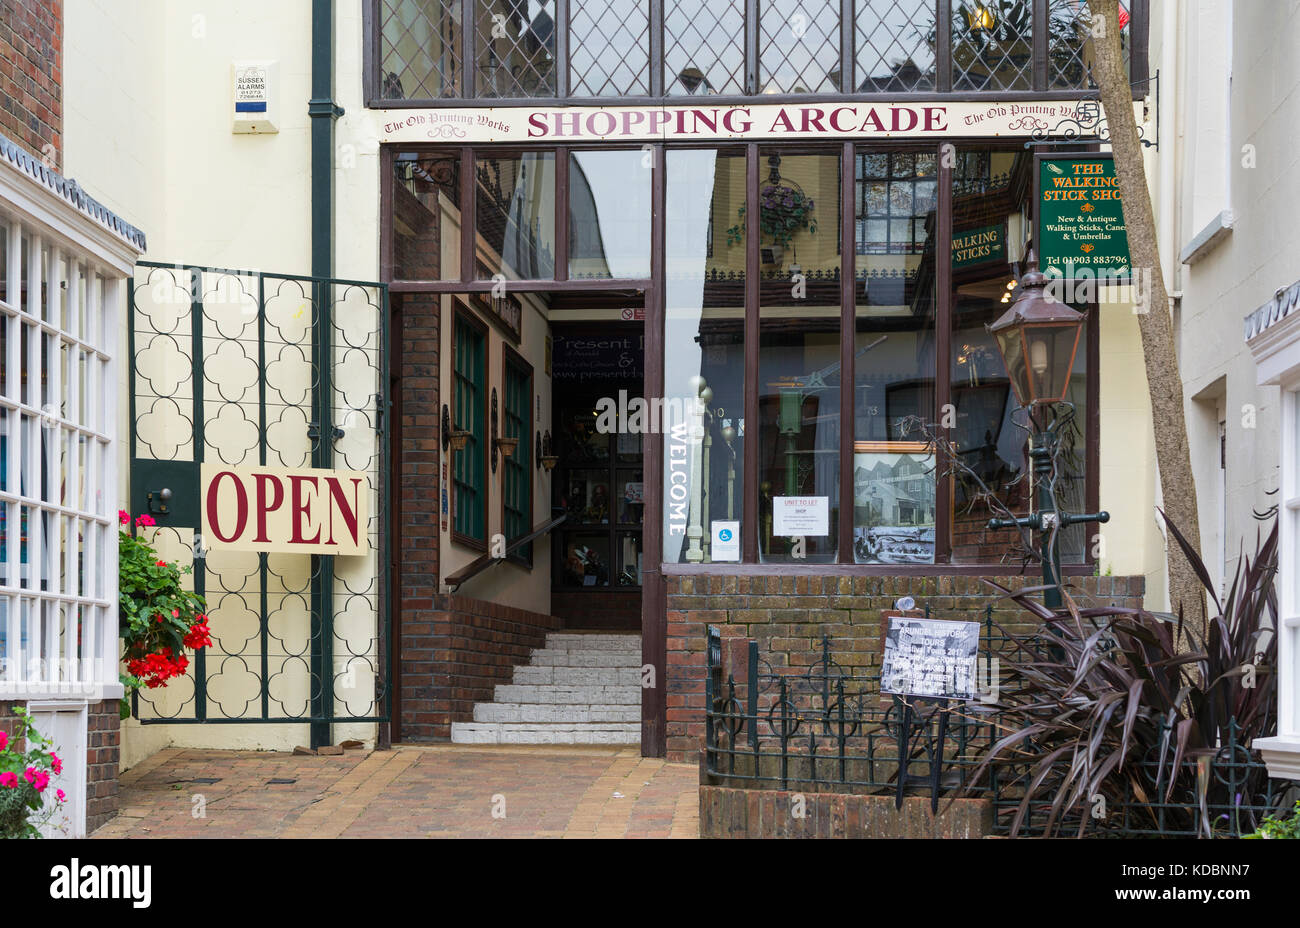 The Old Printing Works Shopping Arcade entrance in Arundel, West Sussex, England, UK. - Stock Image